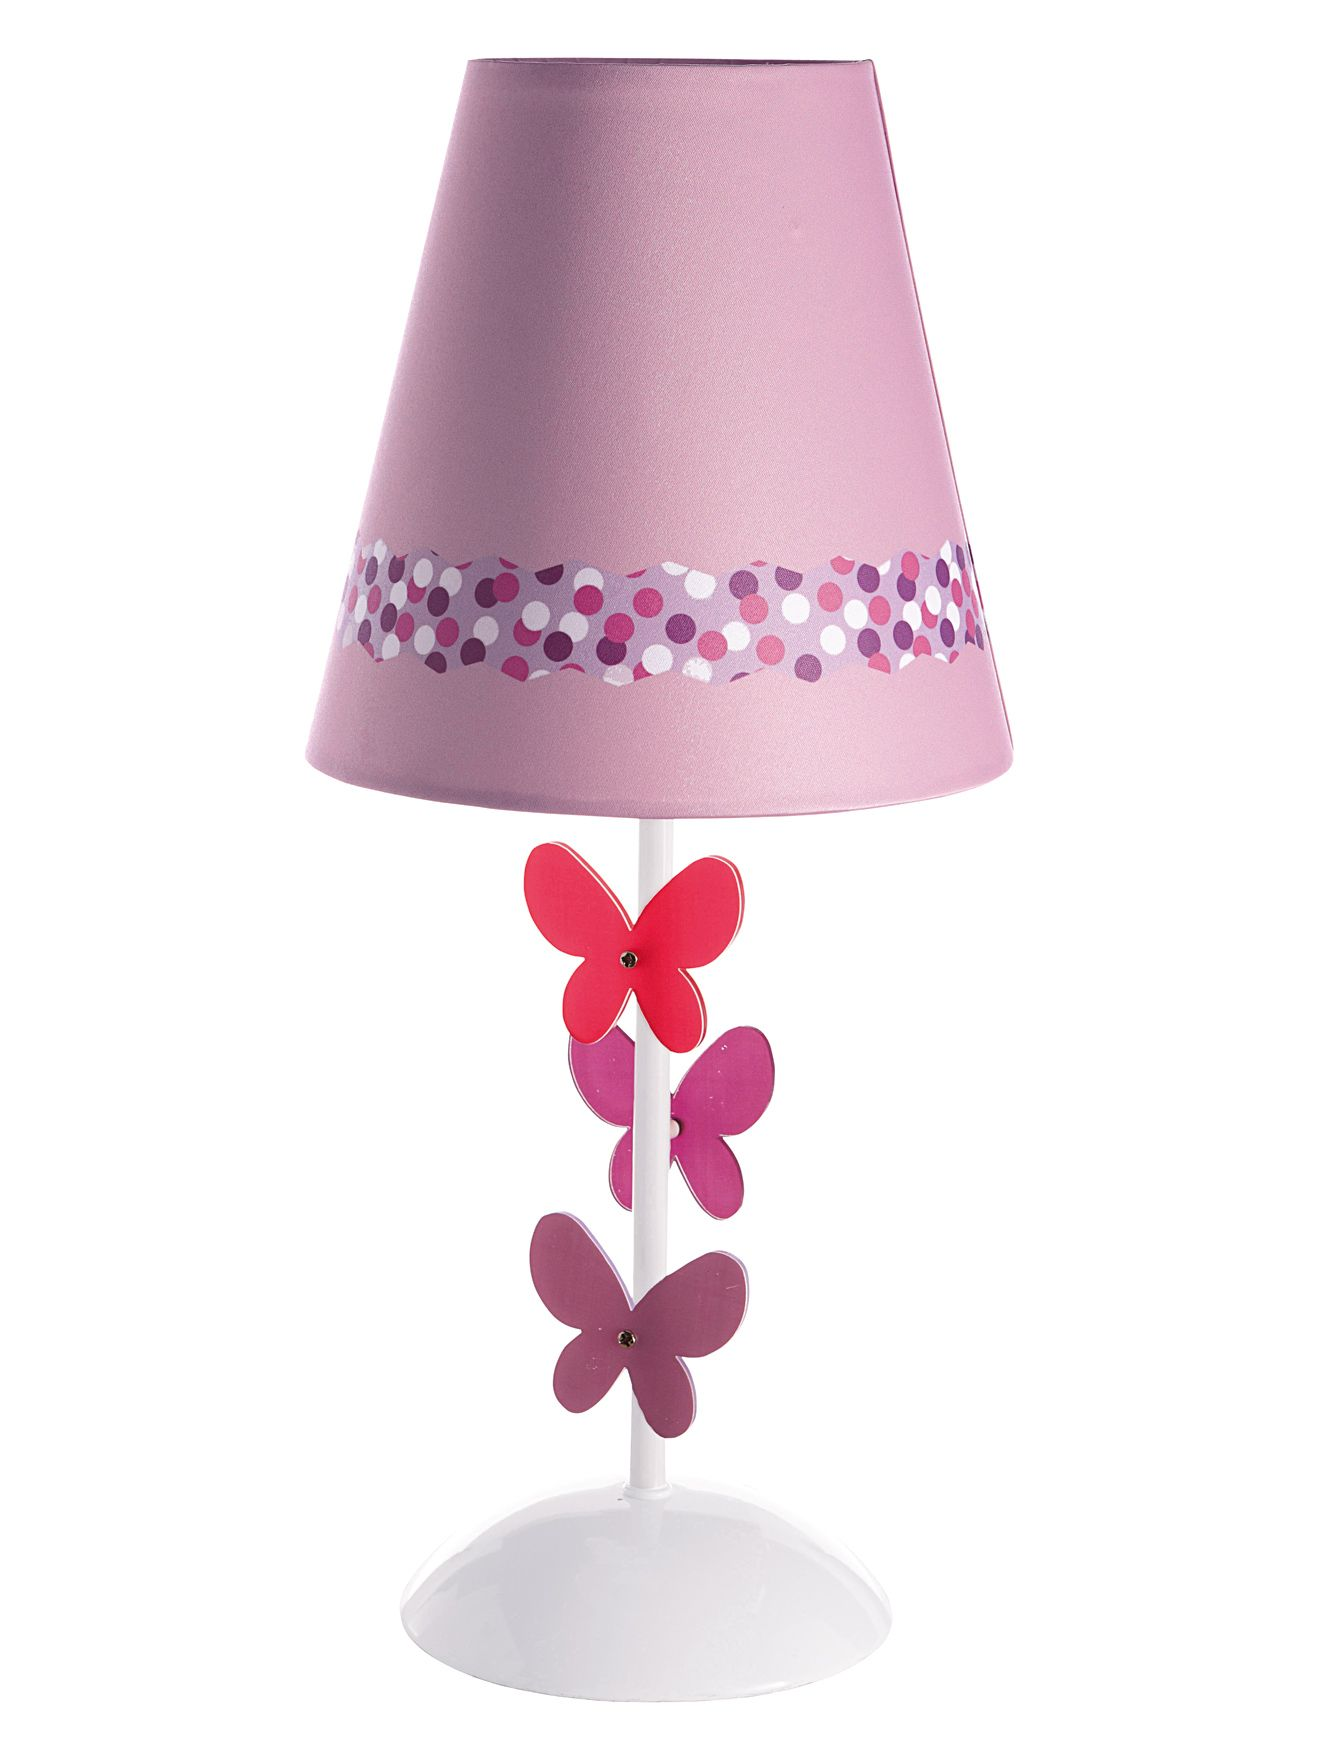 Lampe de chevet fille th me papi mini chambre b b kid s room pinterest lampe de chevet - Lampe chambre bebe ...